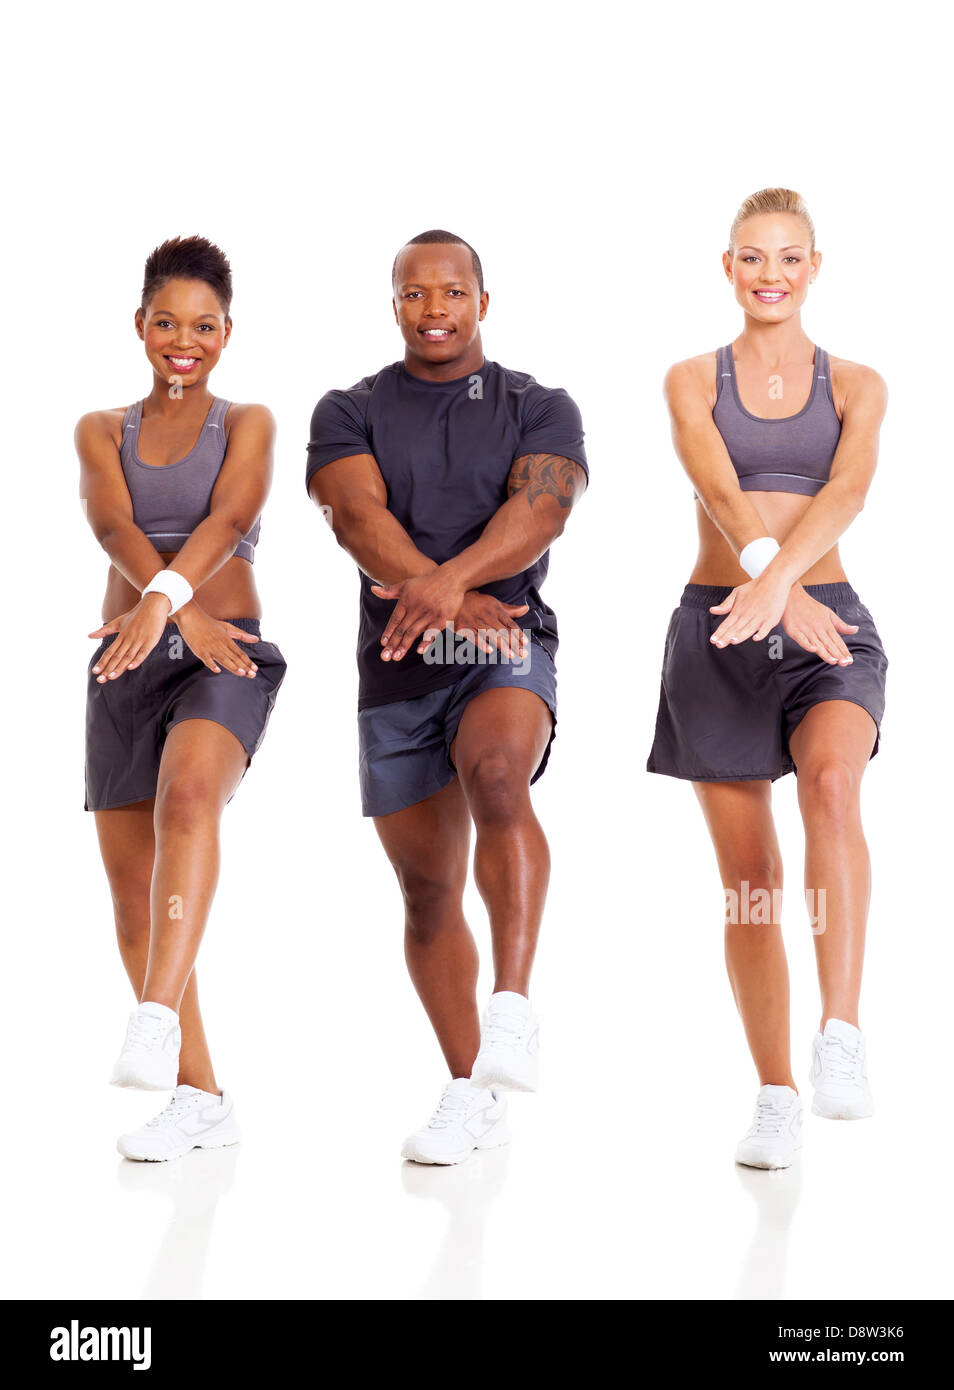 group of fit people working out on white background - Stock Image